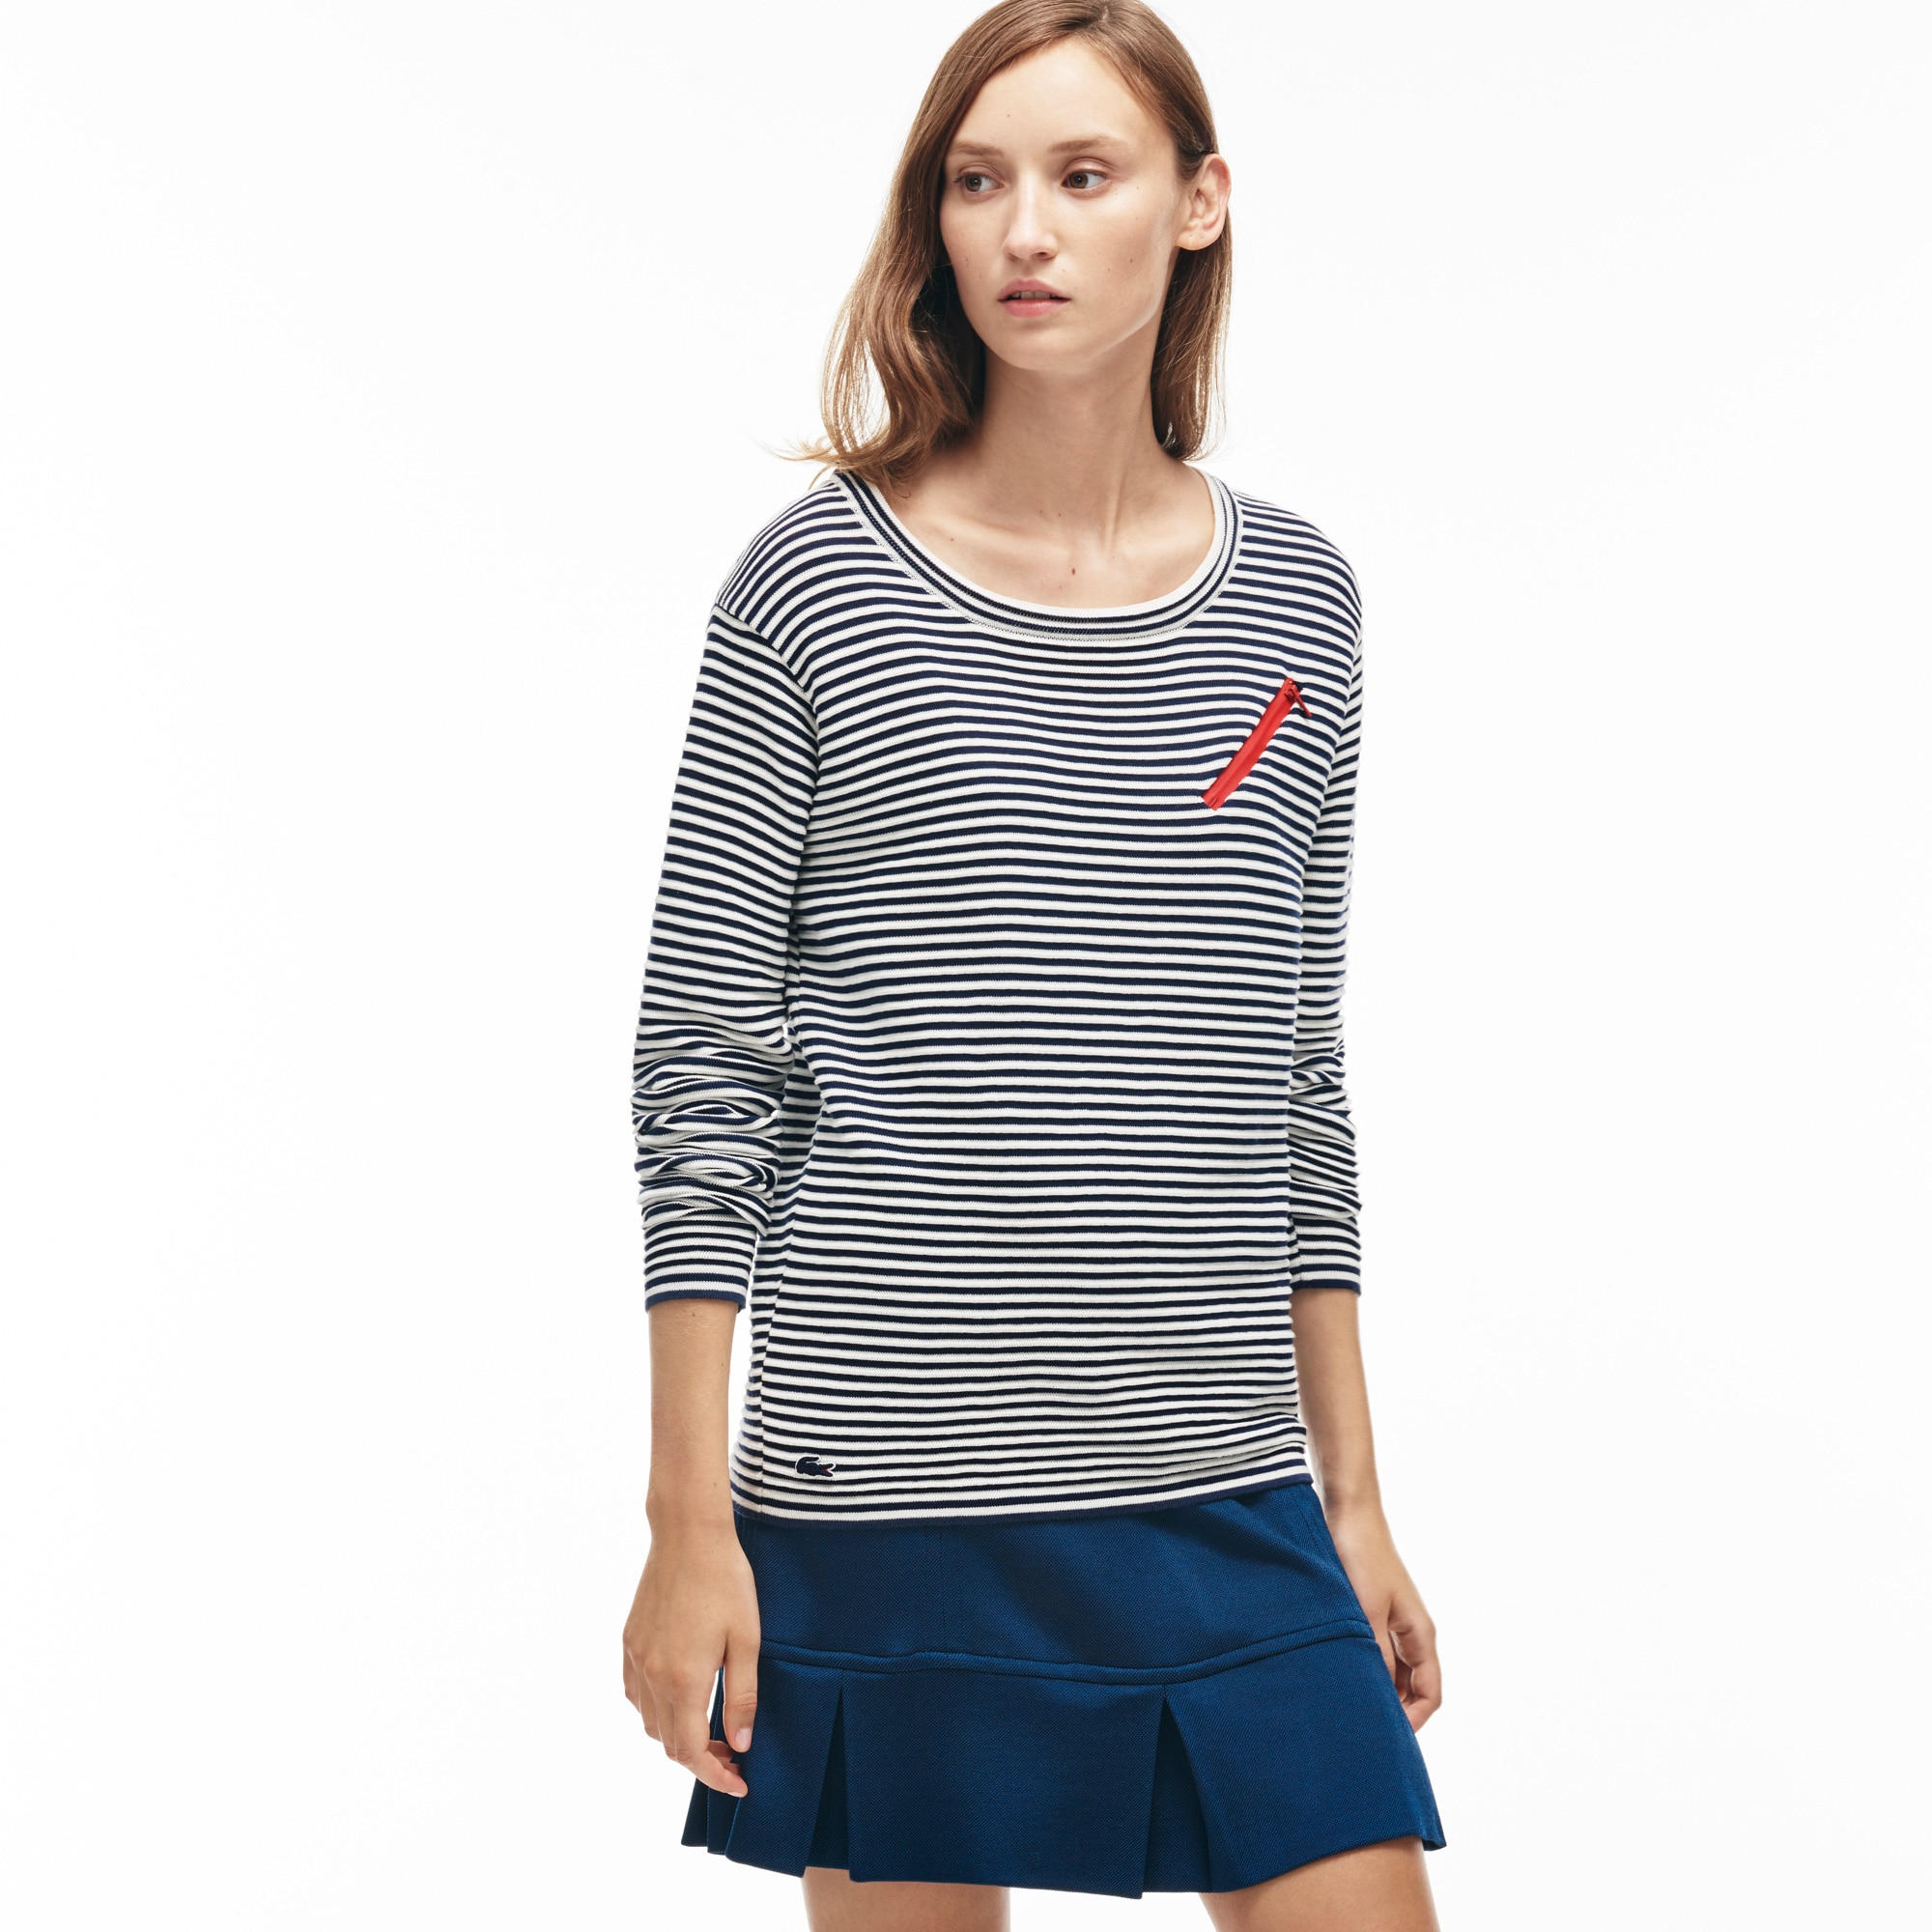 Women's Made in France Zip Nautical Shirt